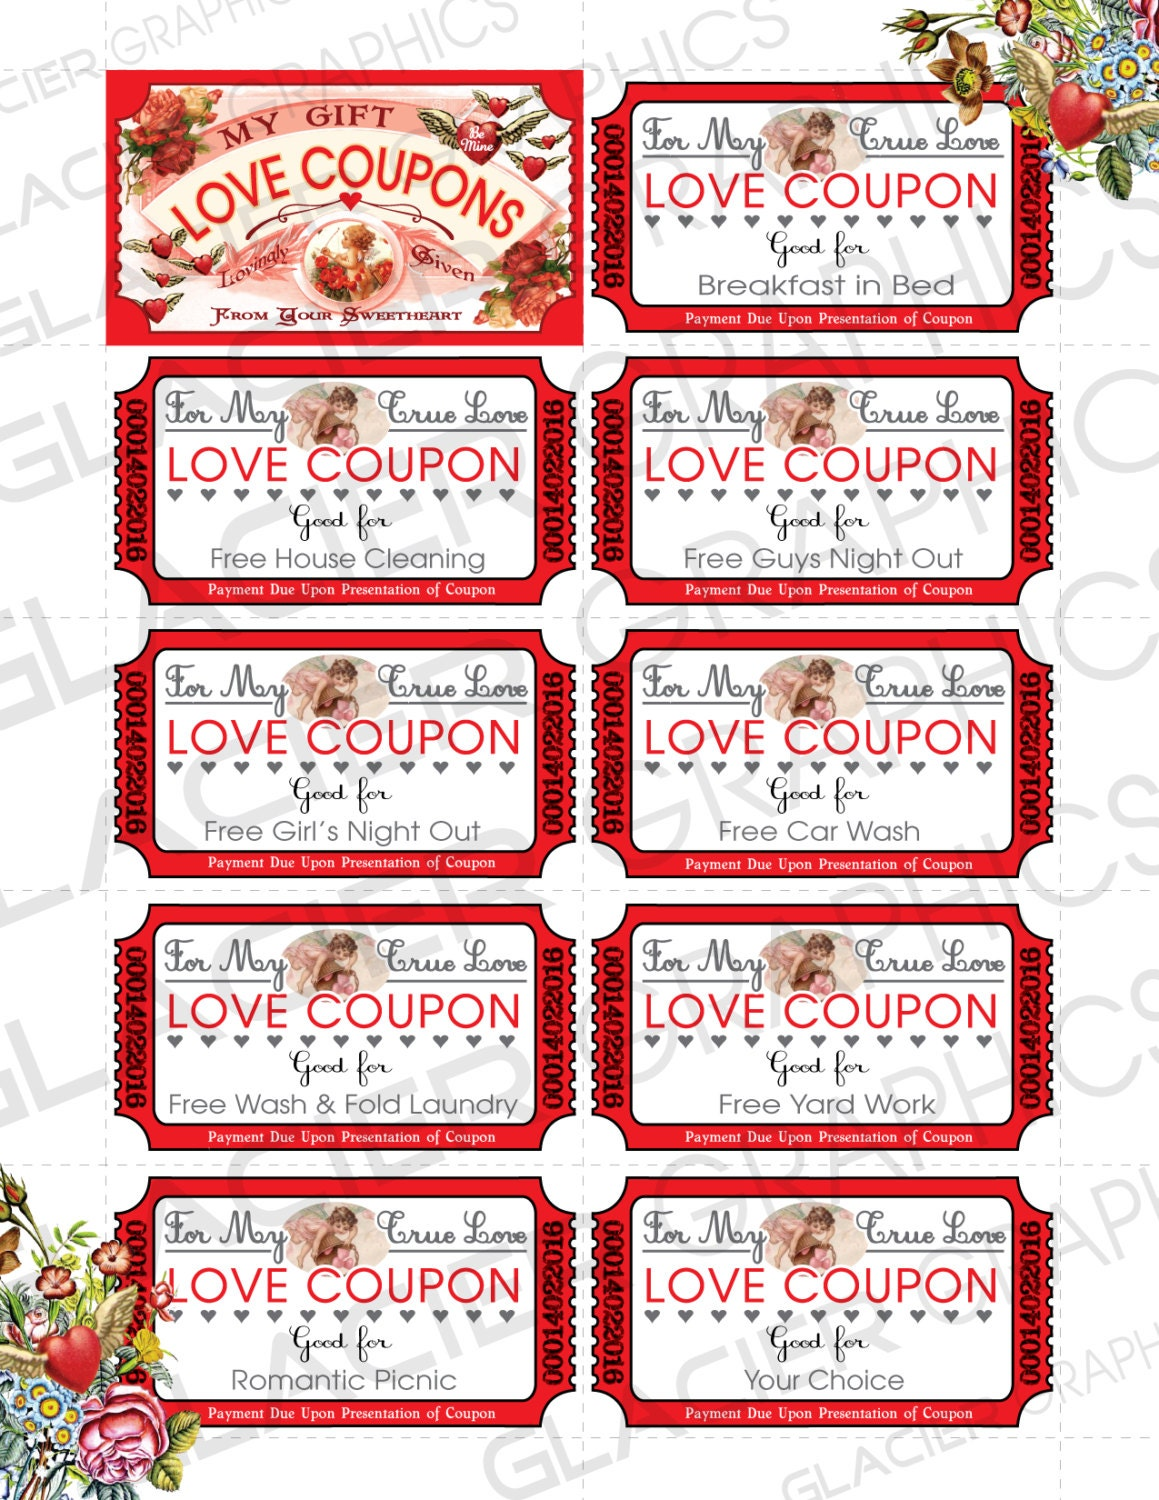 Valentine love coupons business card template valentine gift for her this is a digital file colourmoves